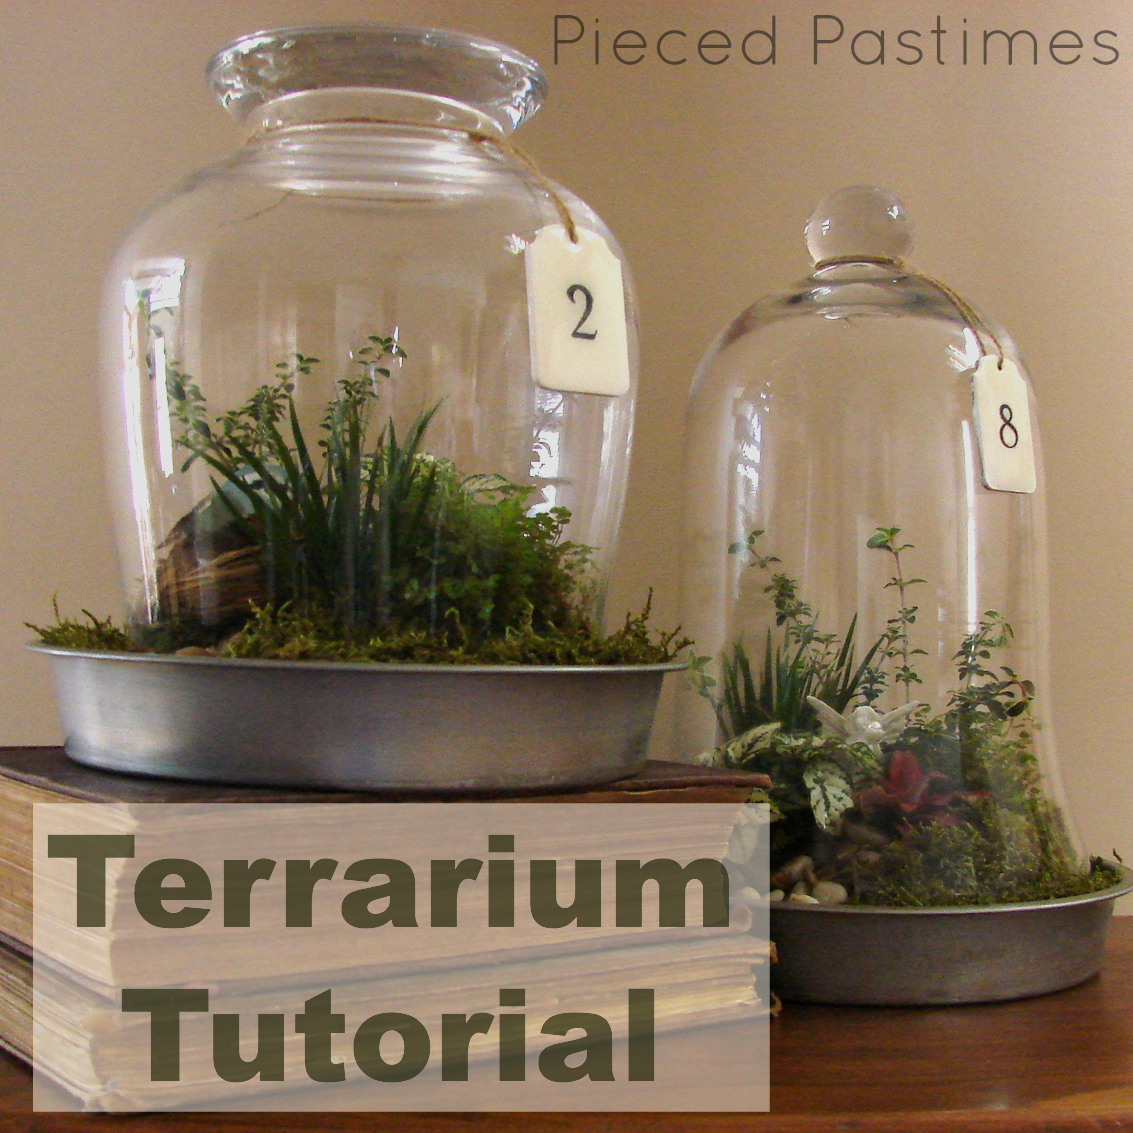 terrarium tutorial pflanzen deko und g rten. Black Bedroom Furniture Sets. Home Design Ideas